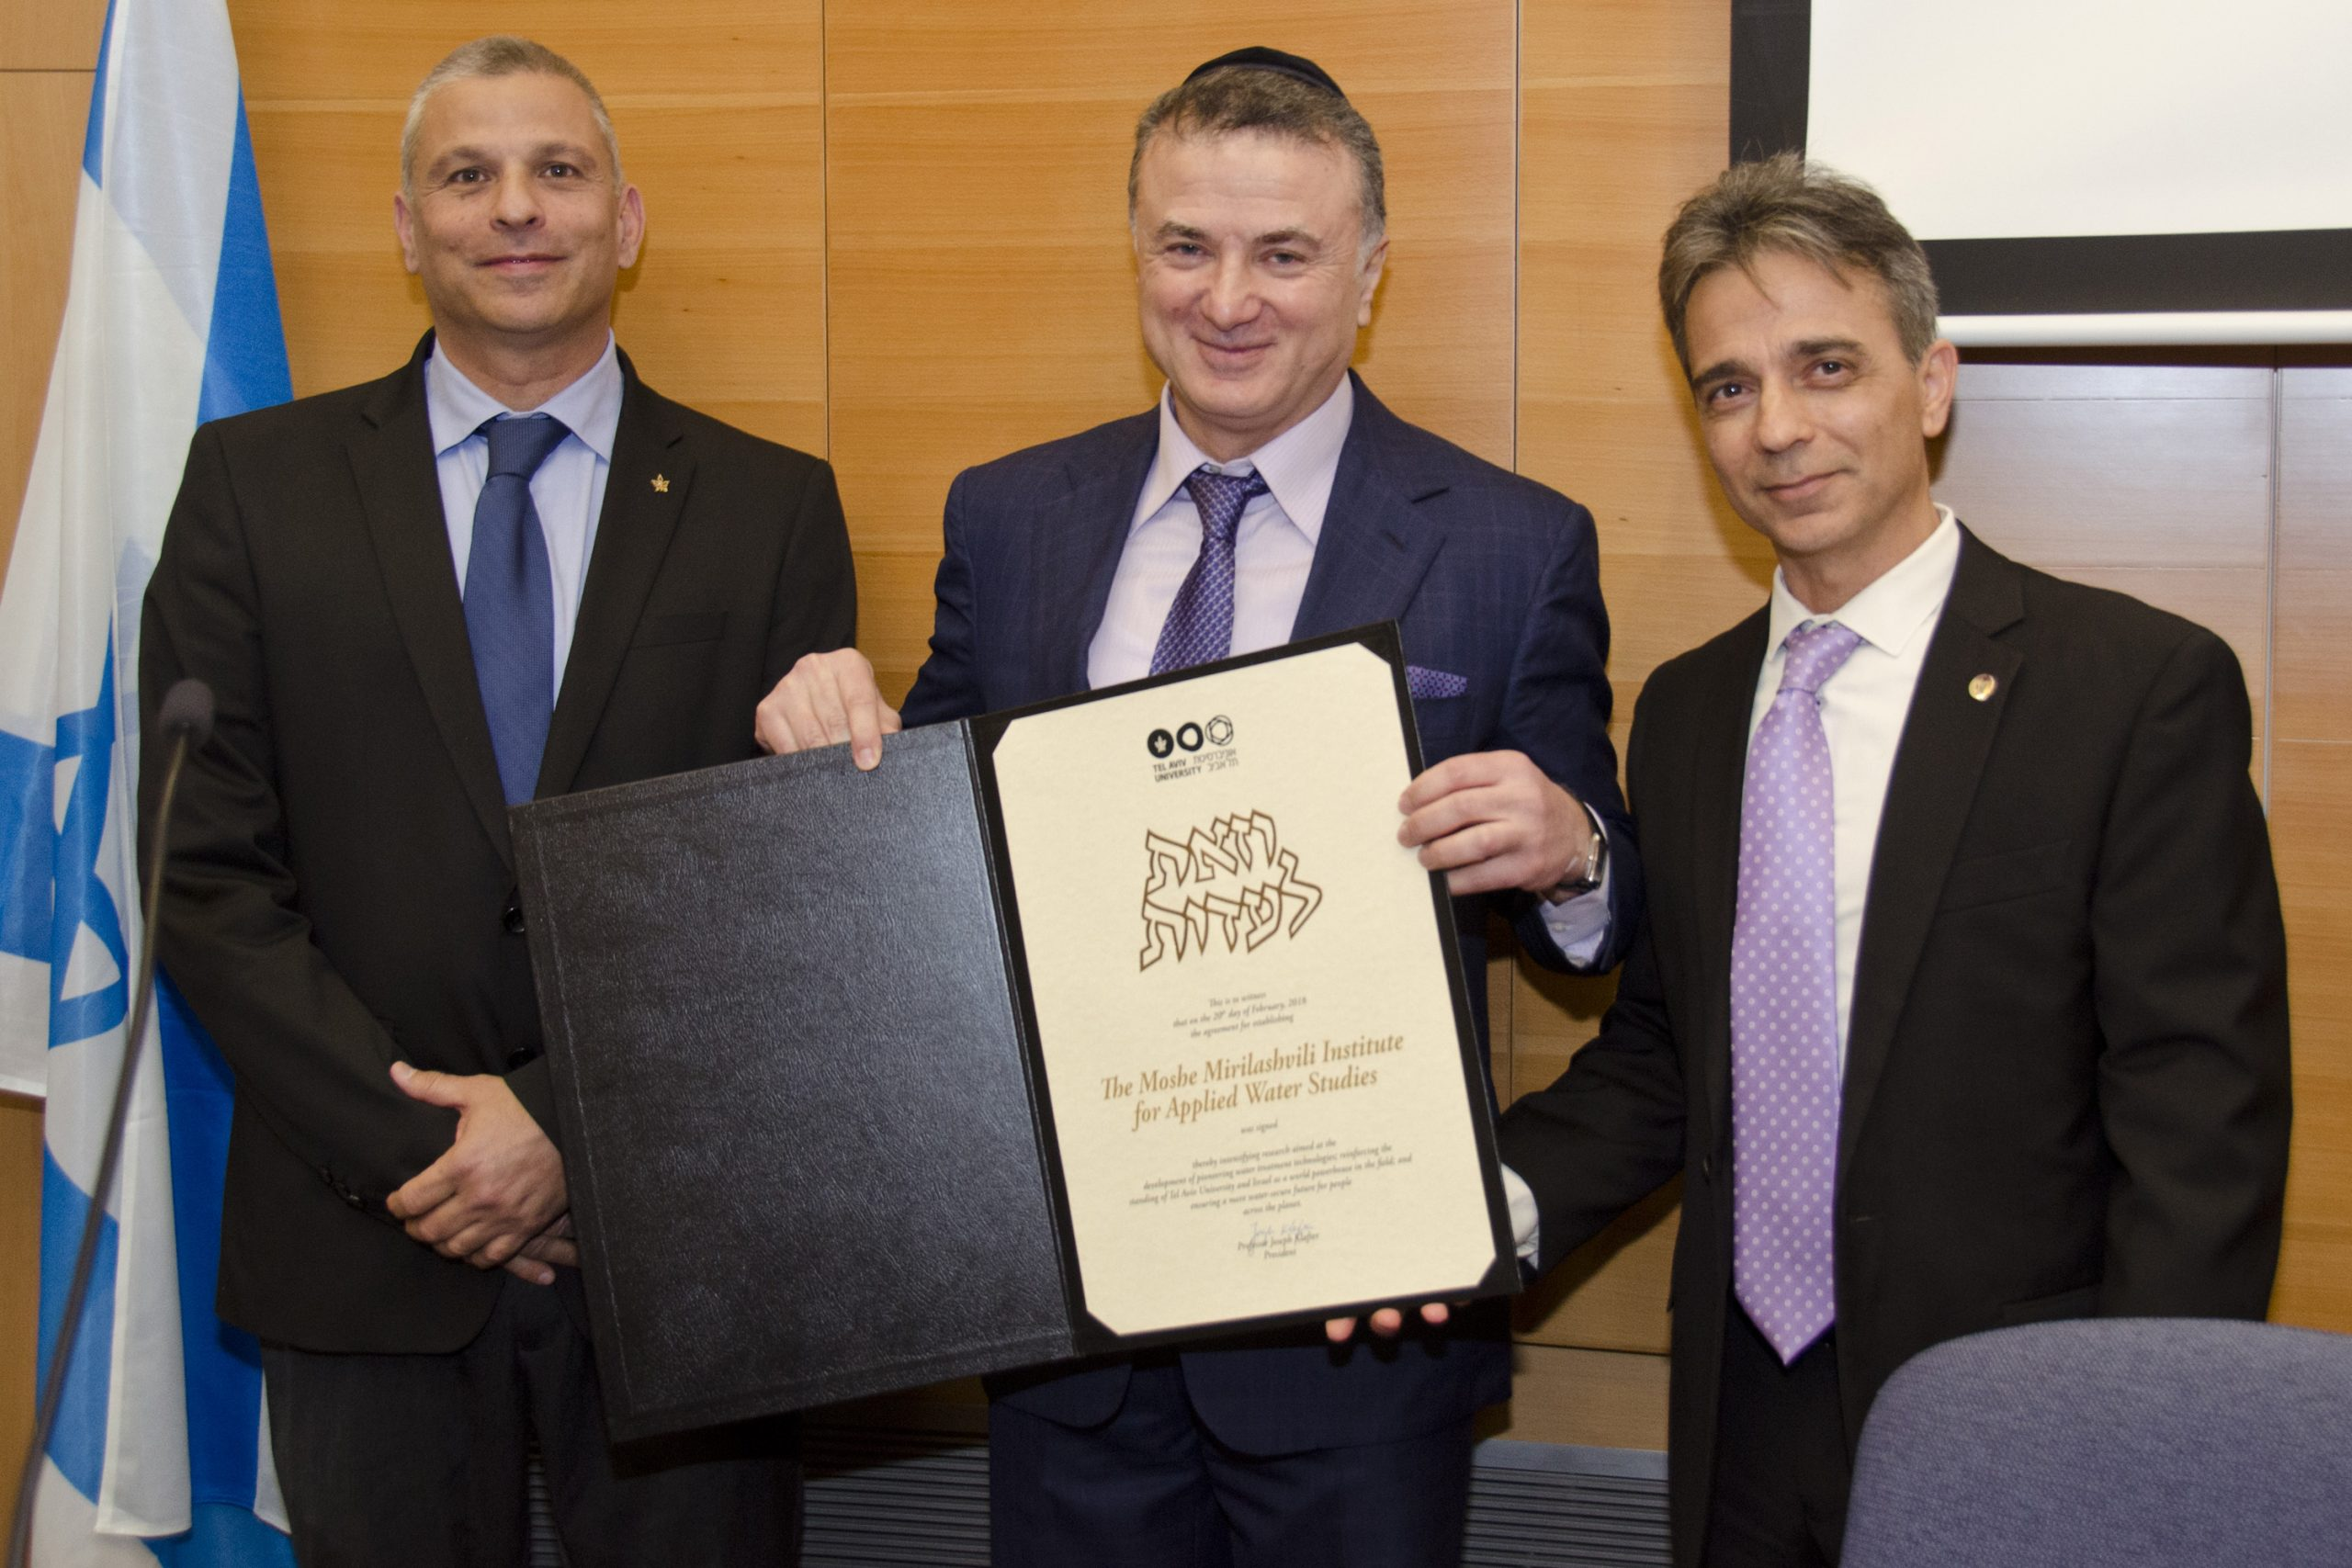 The inauguration of The Moshe Mirilashvili Institute for Applied Water Studies at Tel Aviv University